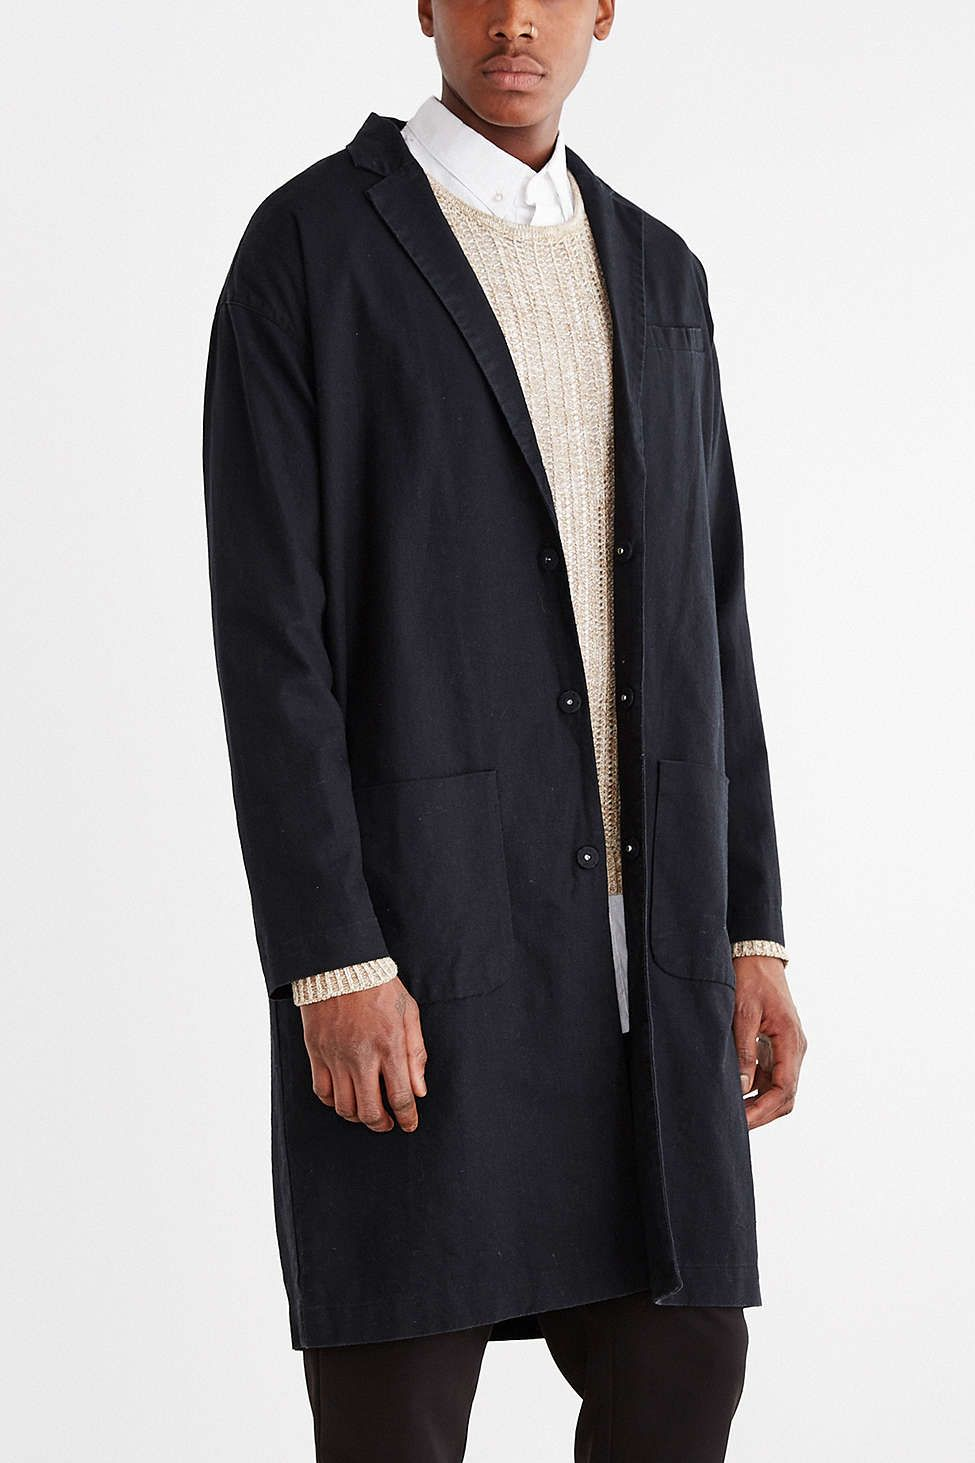 Your Neighbors Linen Duster Jacket | Style: Men | Pinterest ...